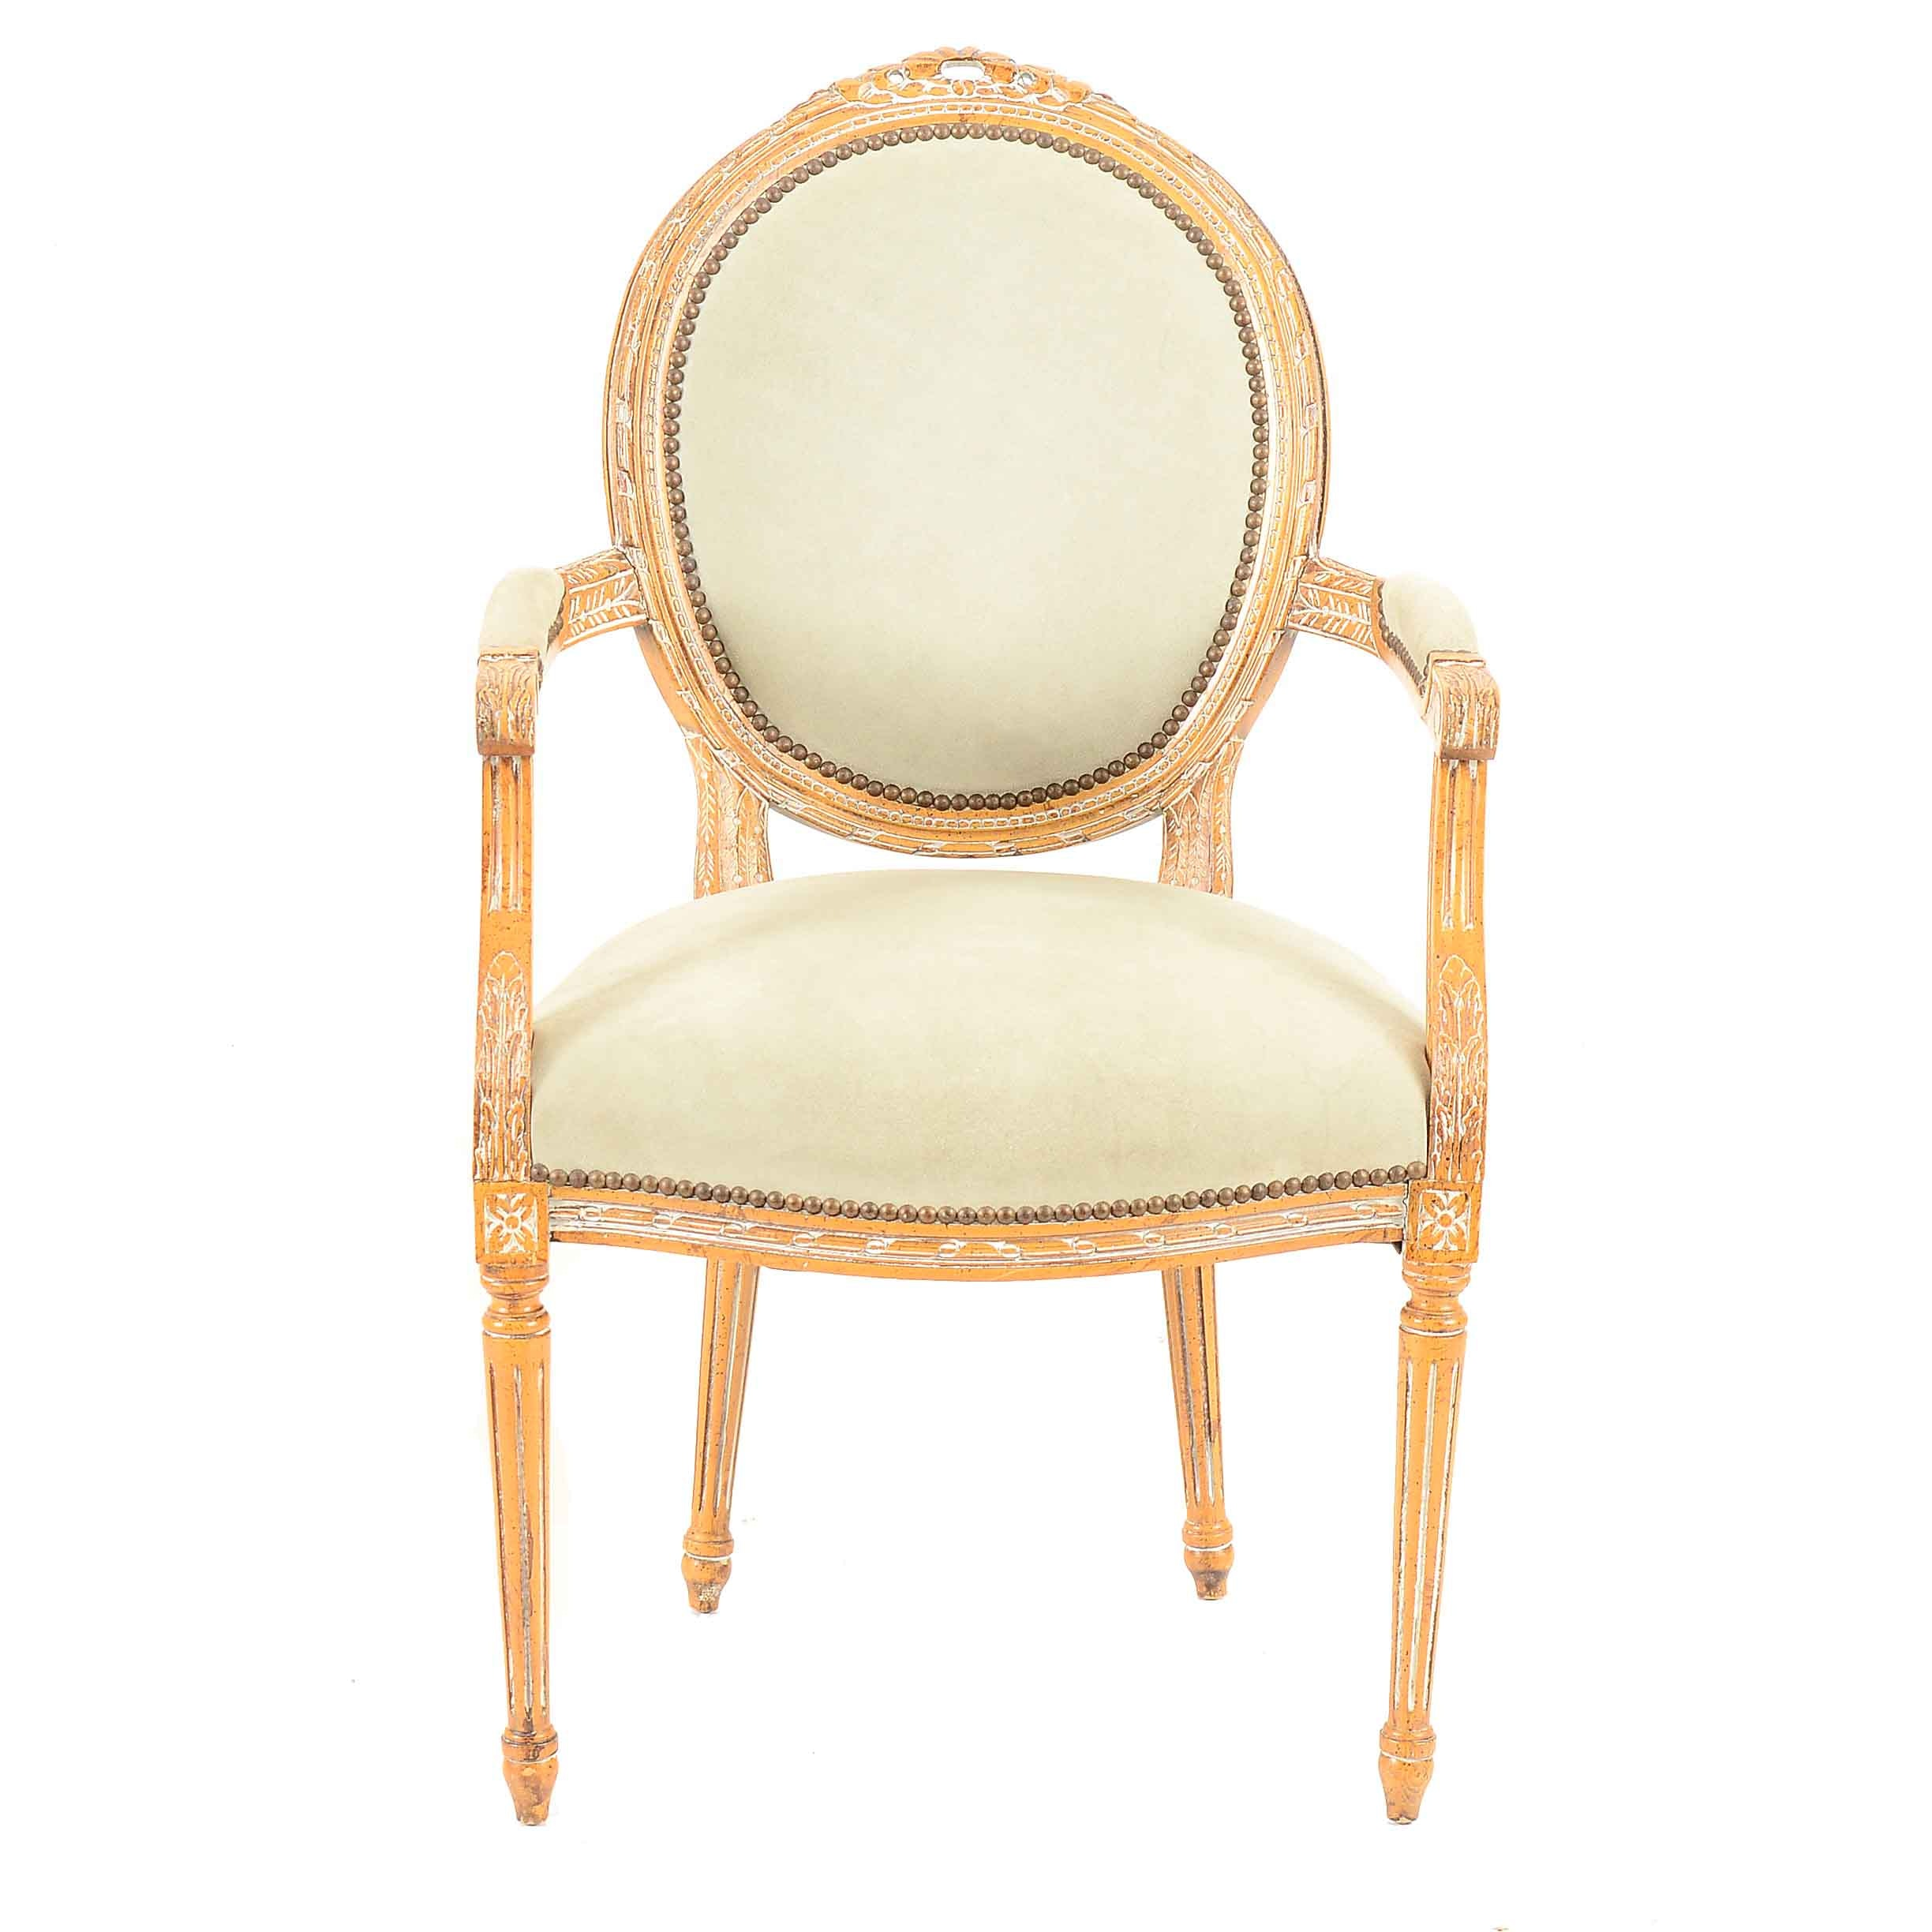 Louis XV Chair by Kenyon Home Furnishings, Itd.